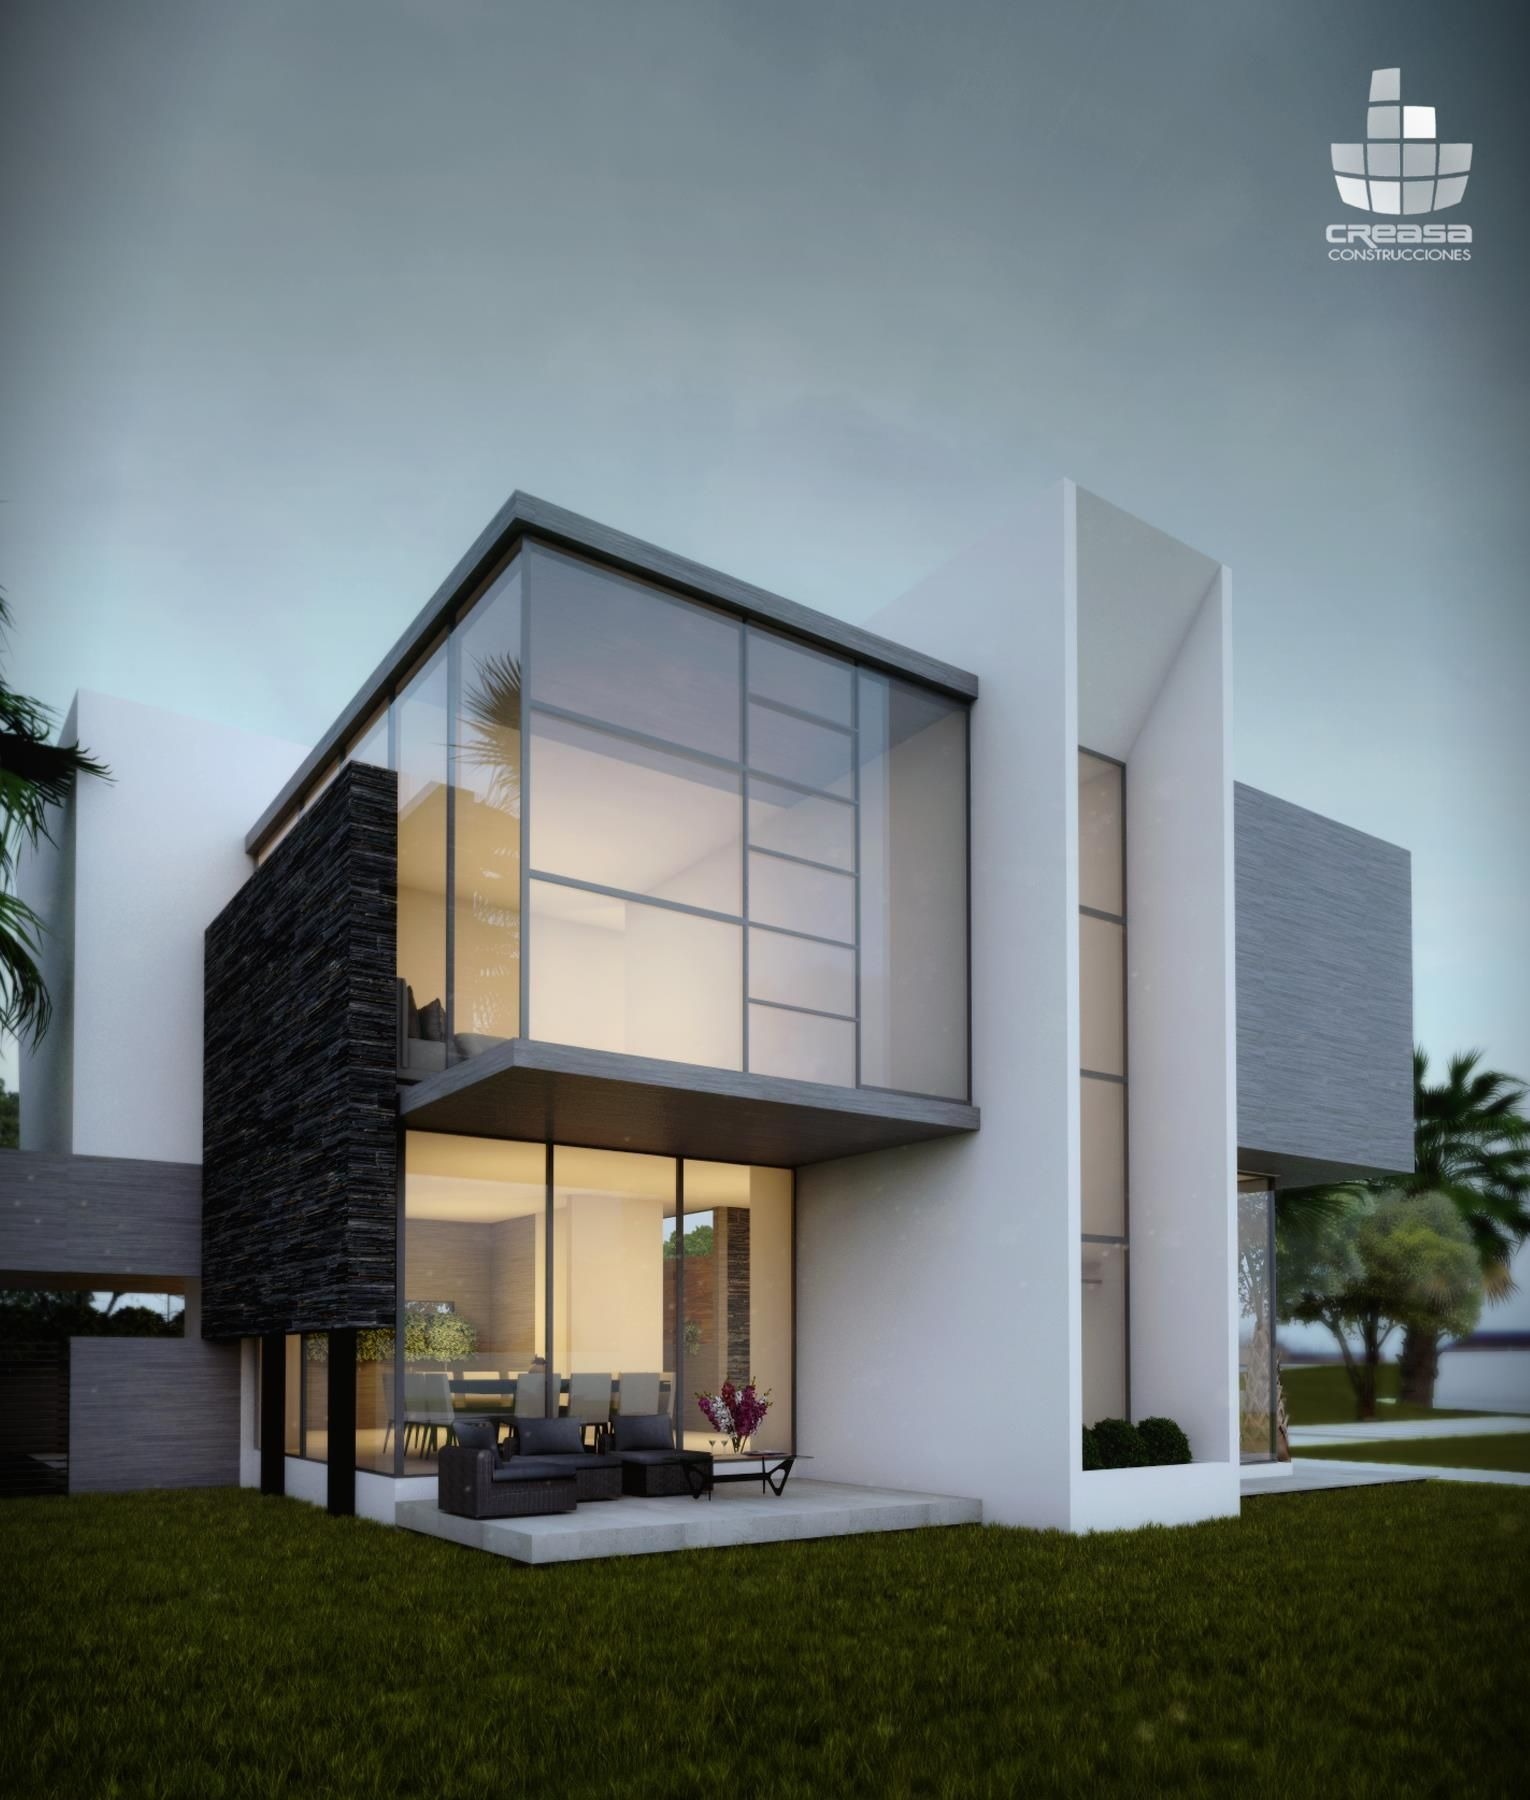 Creasa modern architecture pinterest villas house for Villa ideas designs